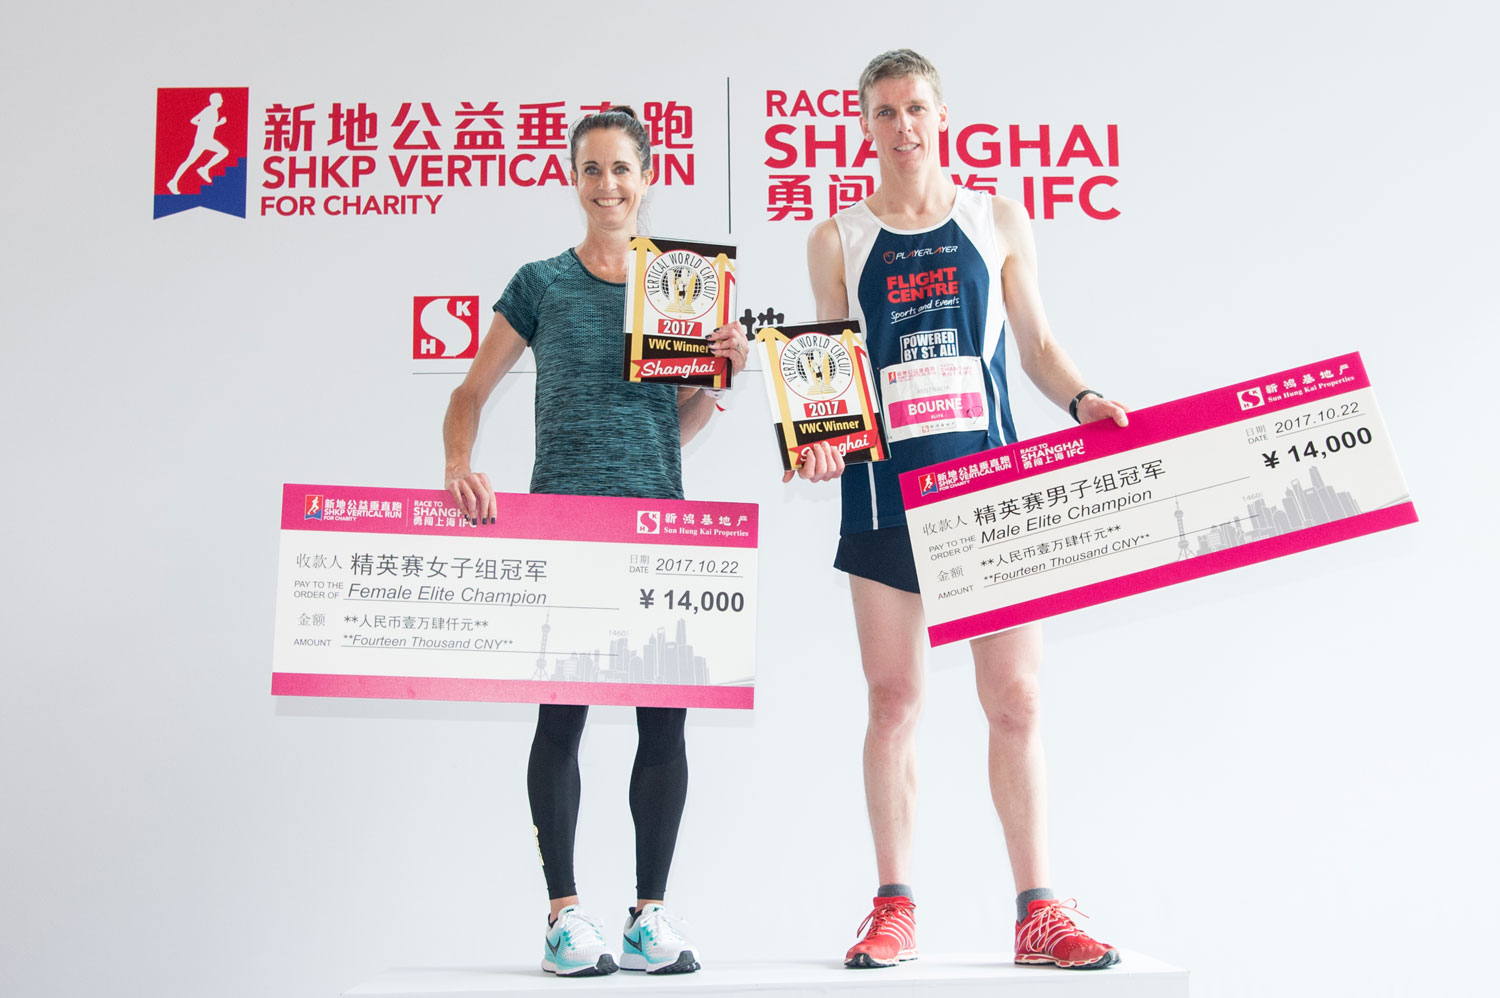 Race winners Suzy Walsham, who set a new record, and Mark Bourne. ©Sporting Republic